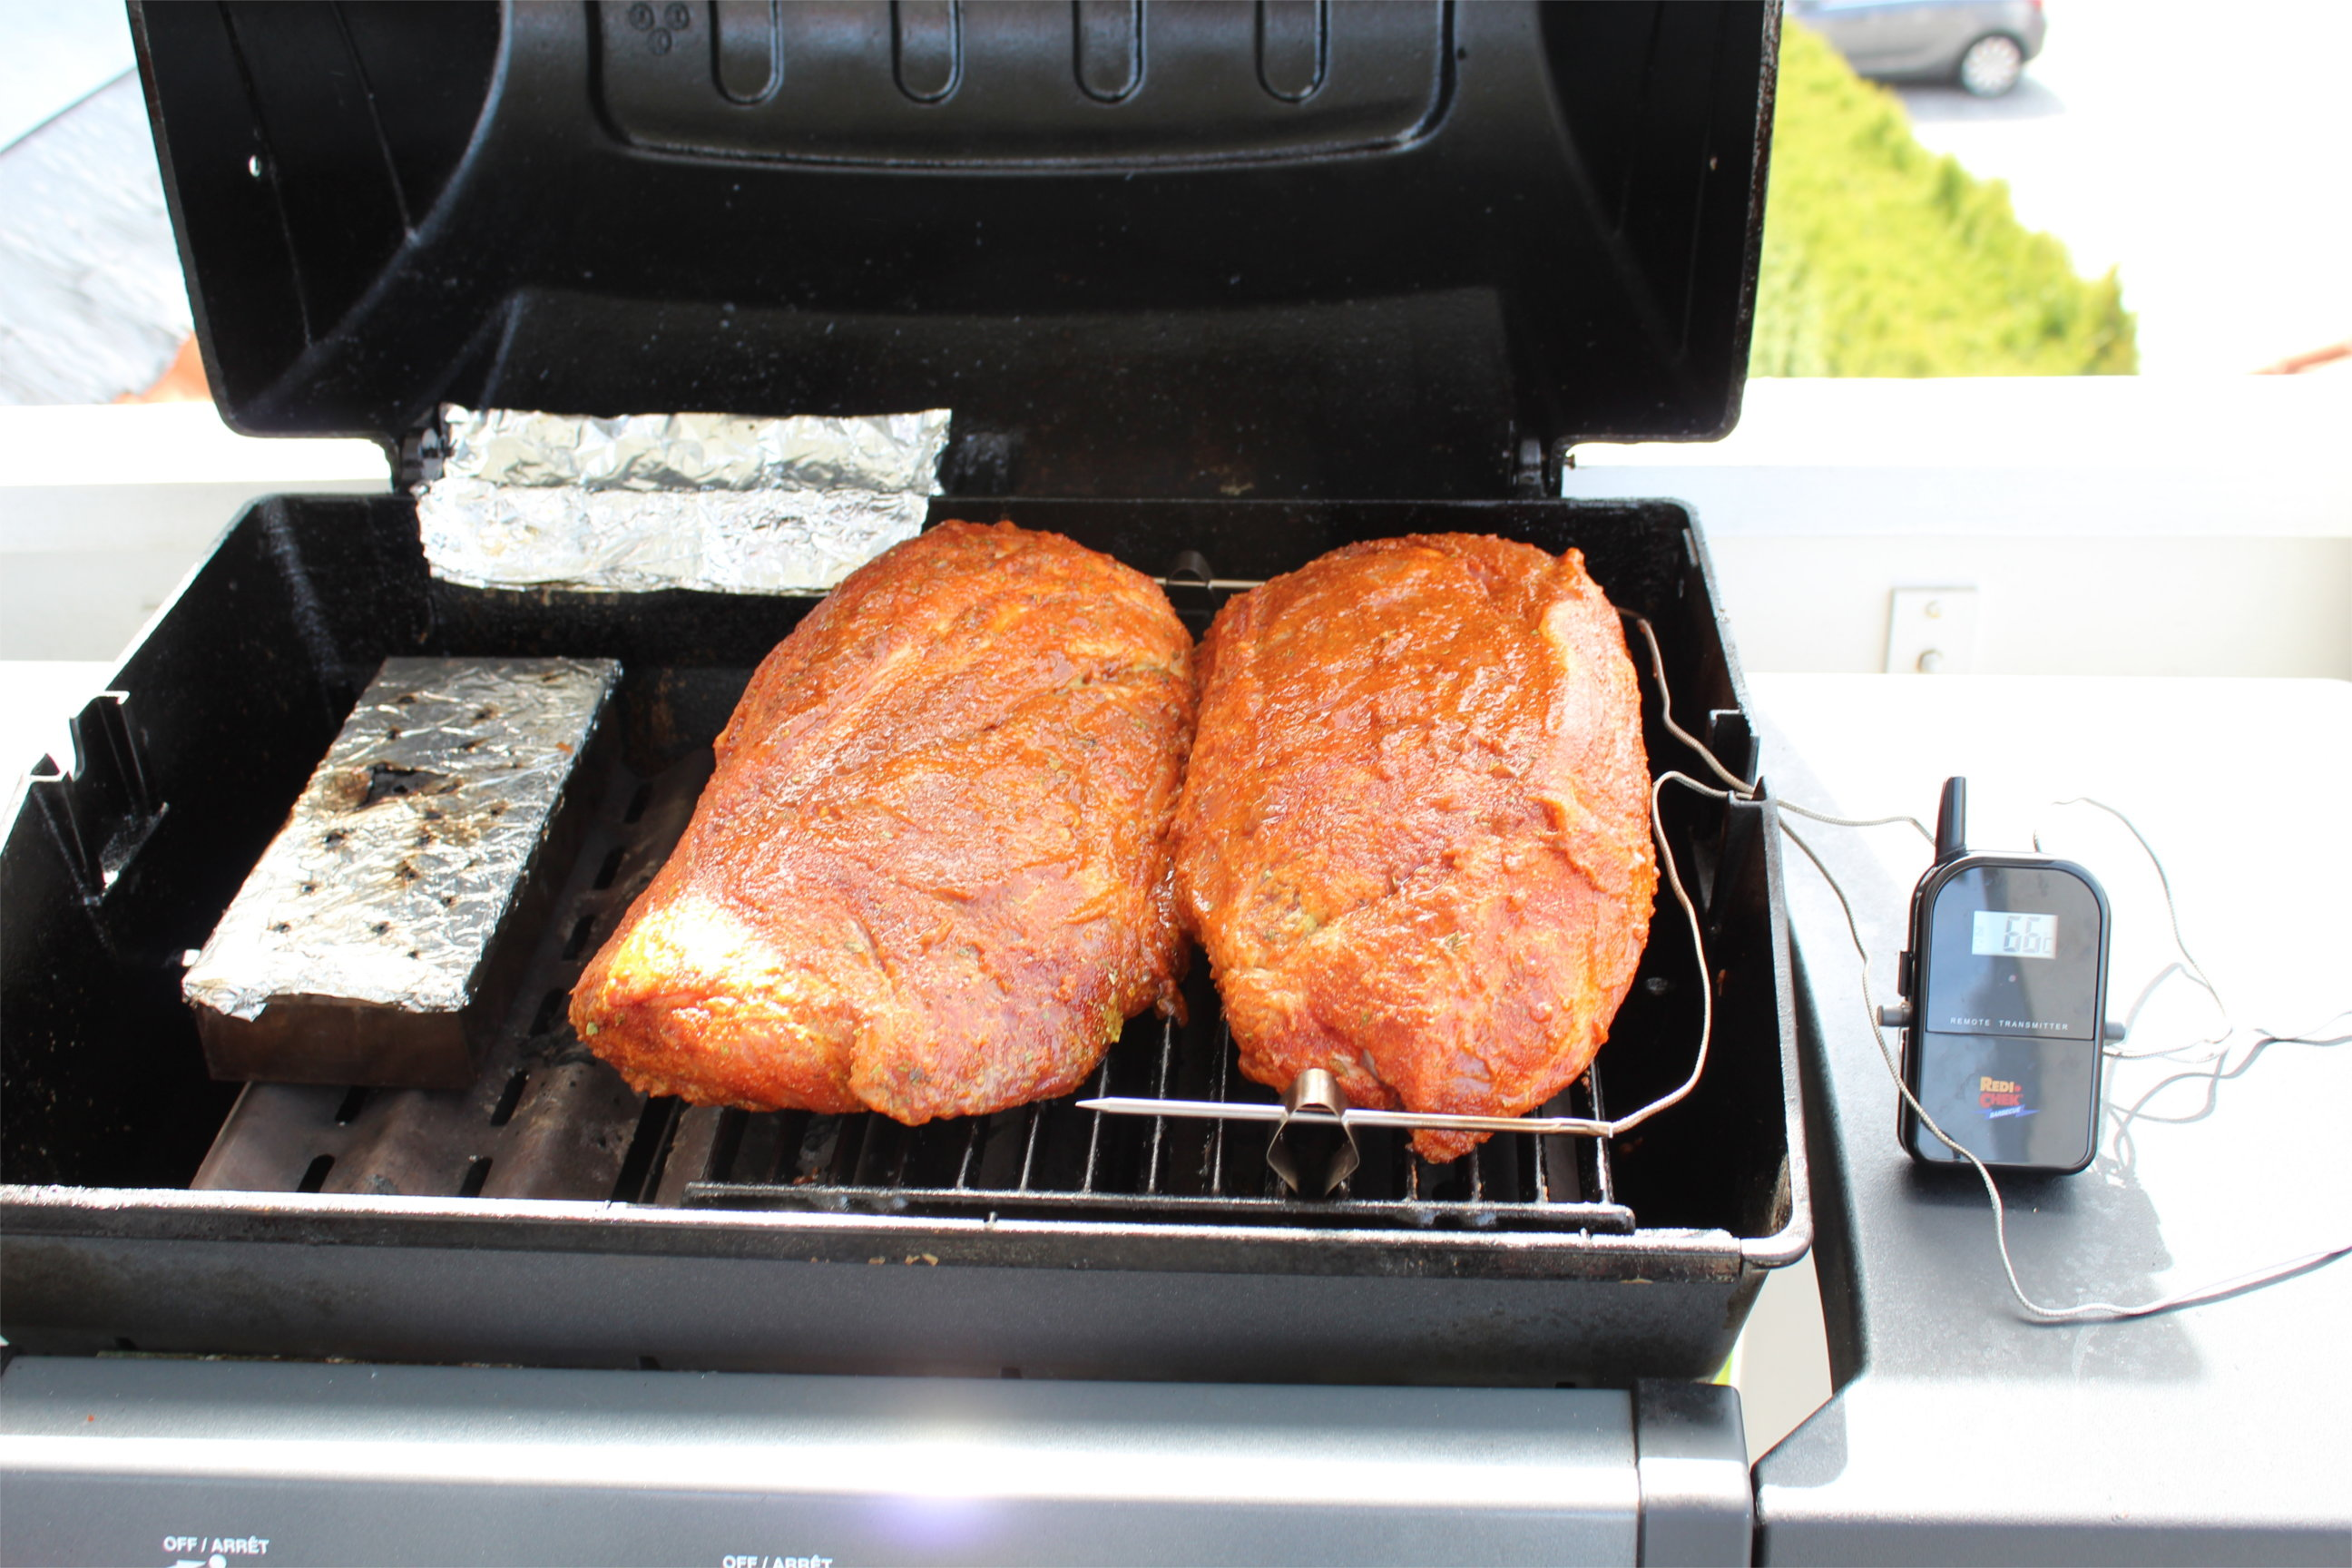 Pulled Pork Texas Style Gasgrill : Pulled pork texas style u übertrieben saftiges pulled pork in